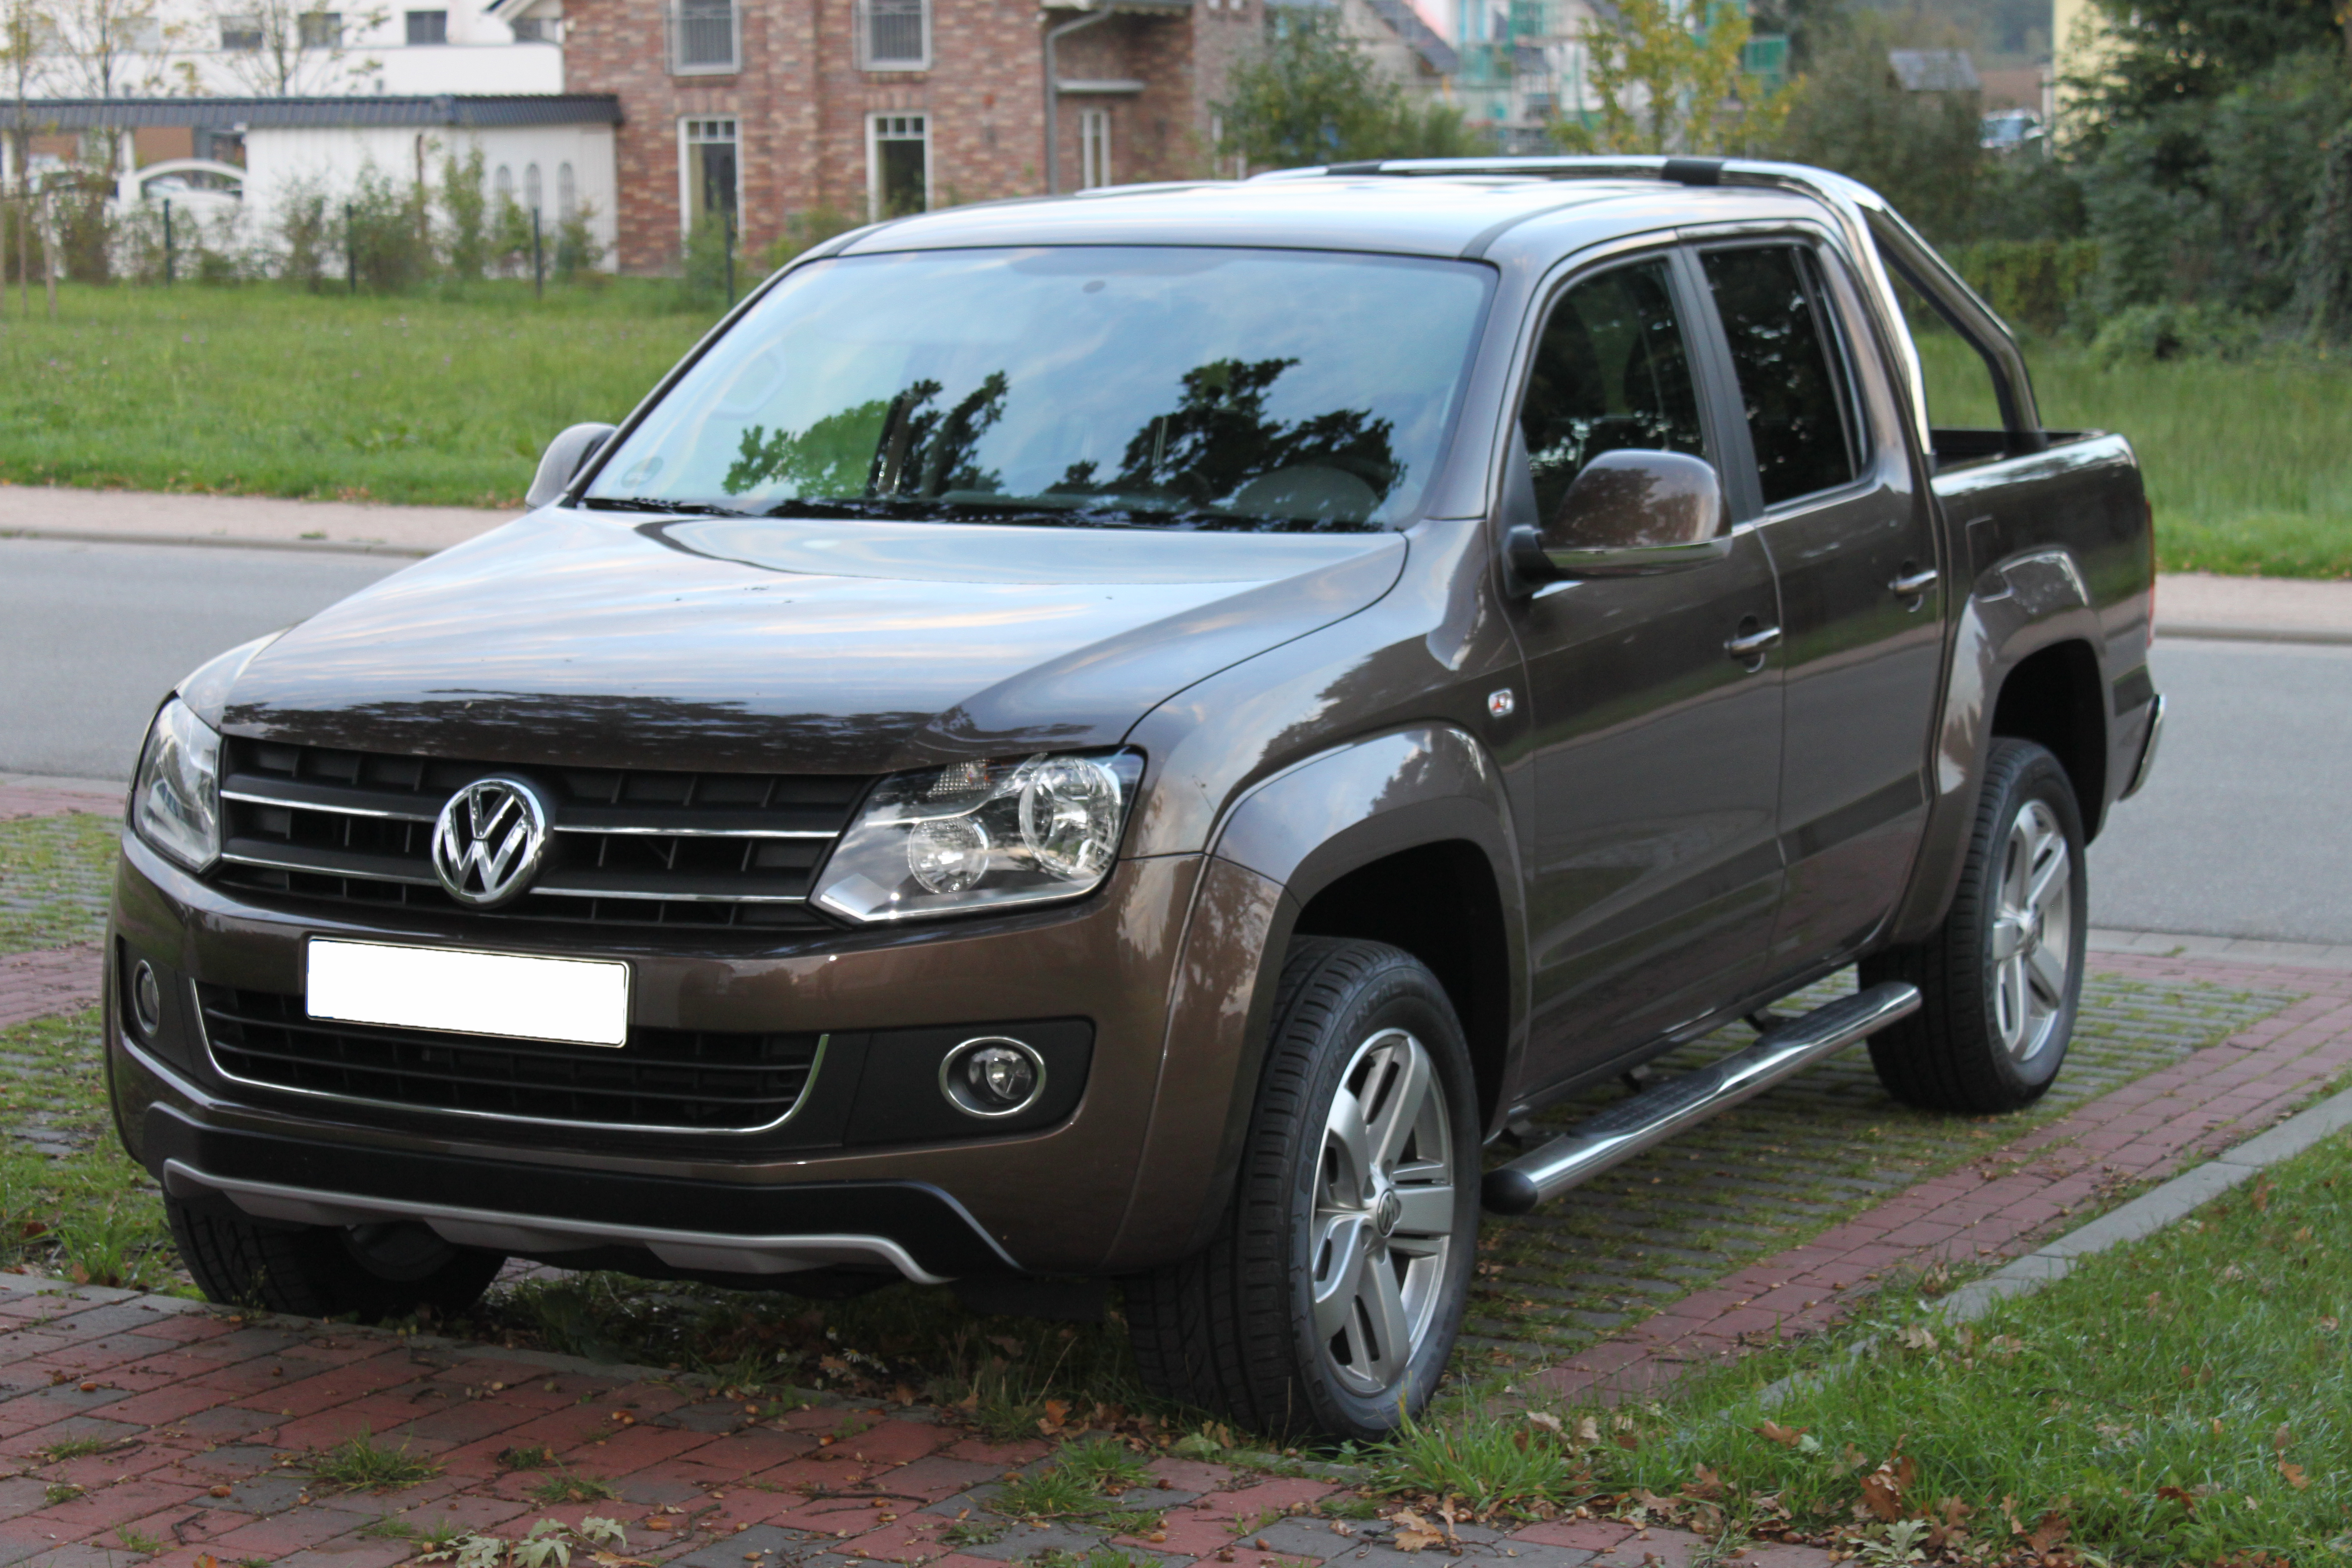 http://upload.wikimedia.org/wikipedia/commons/c/c6/VW_Amarok_front.jpg